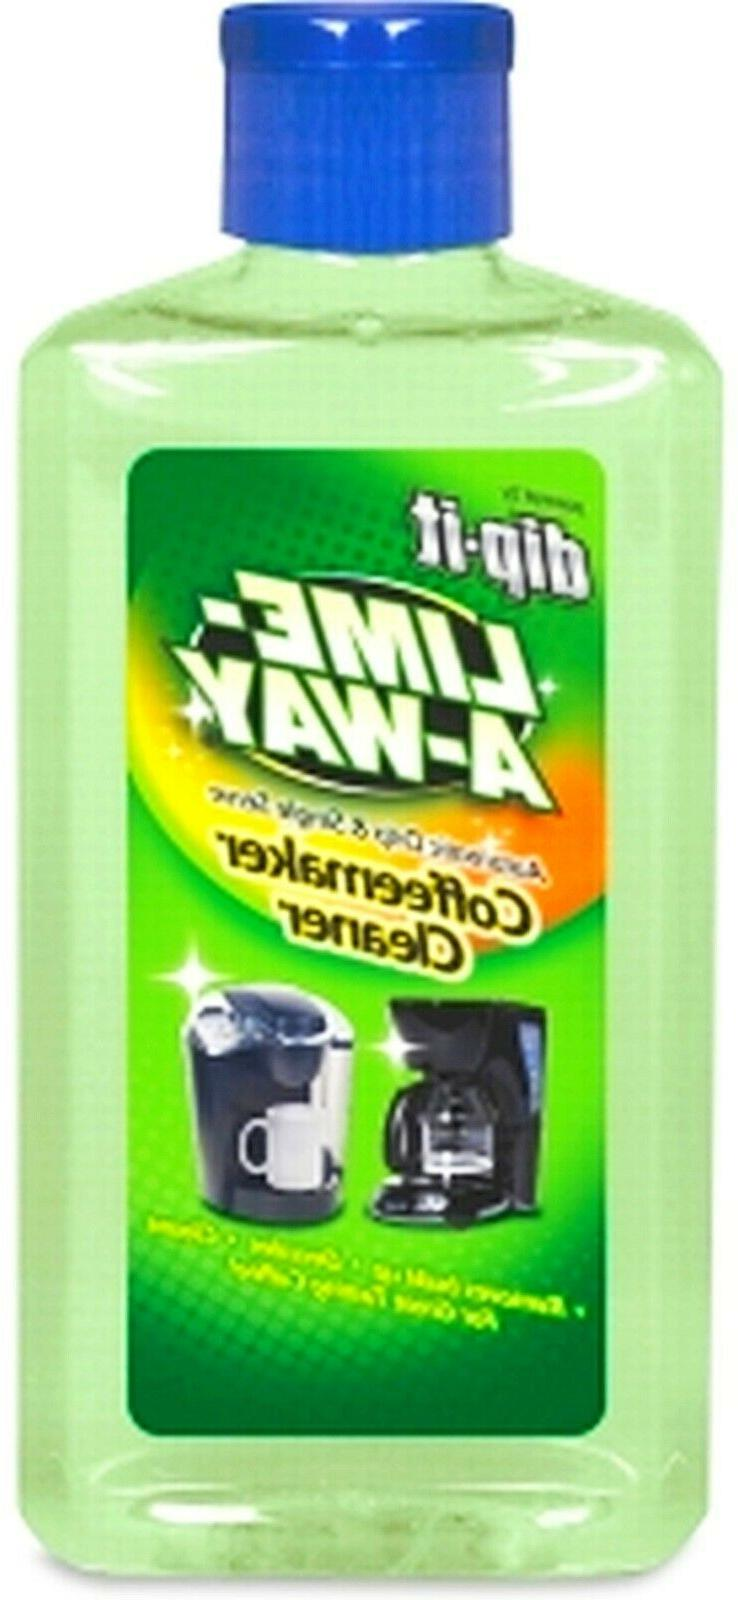 LIME-A-WAY powered by dip-it Clean COFFEEMAKER Machine Liqui